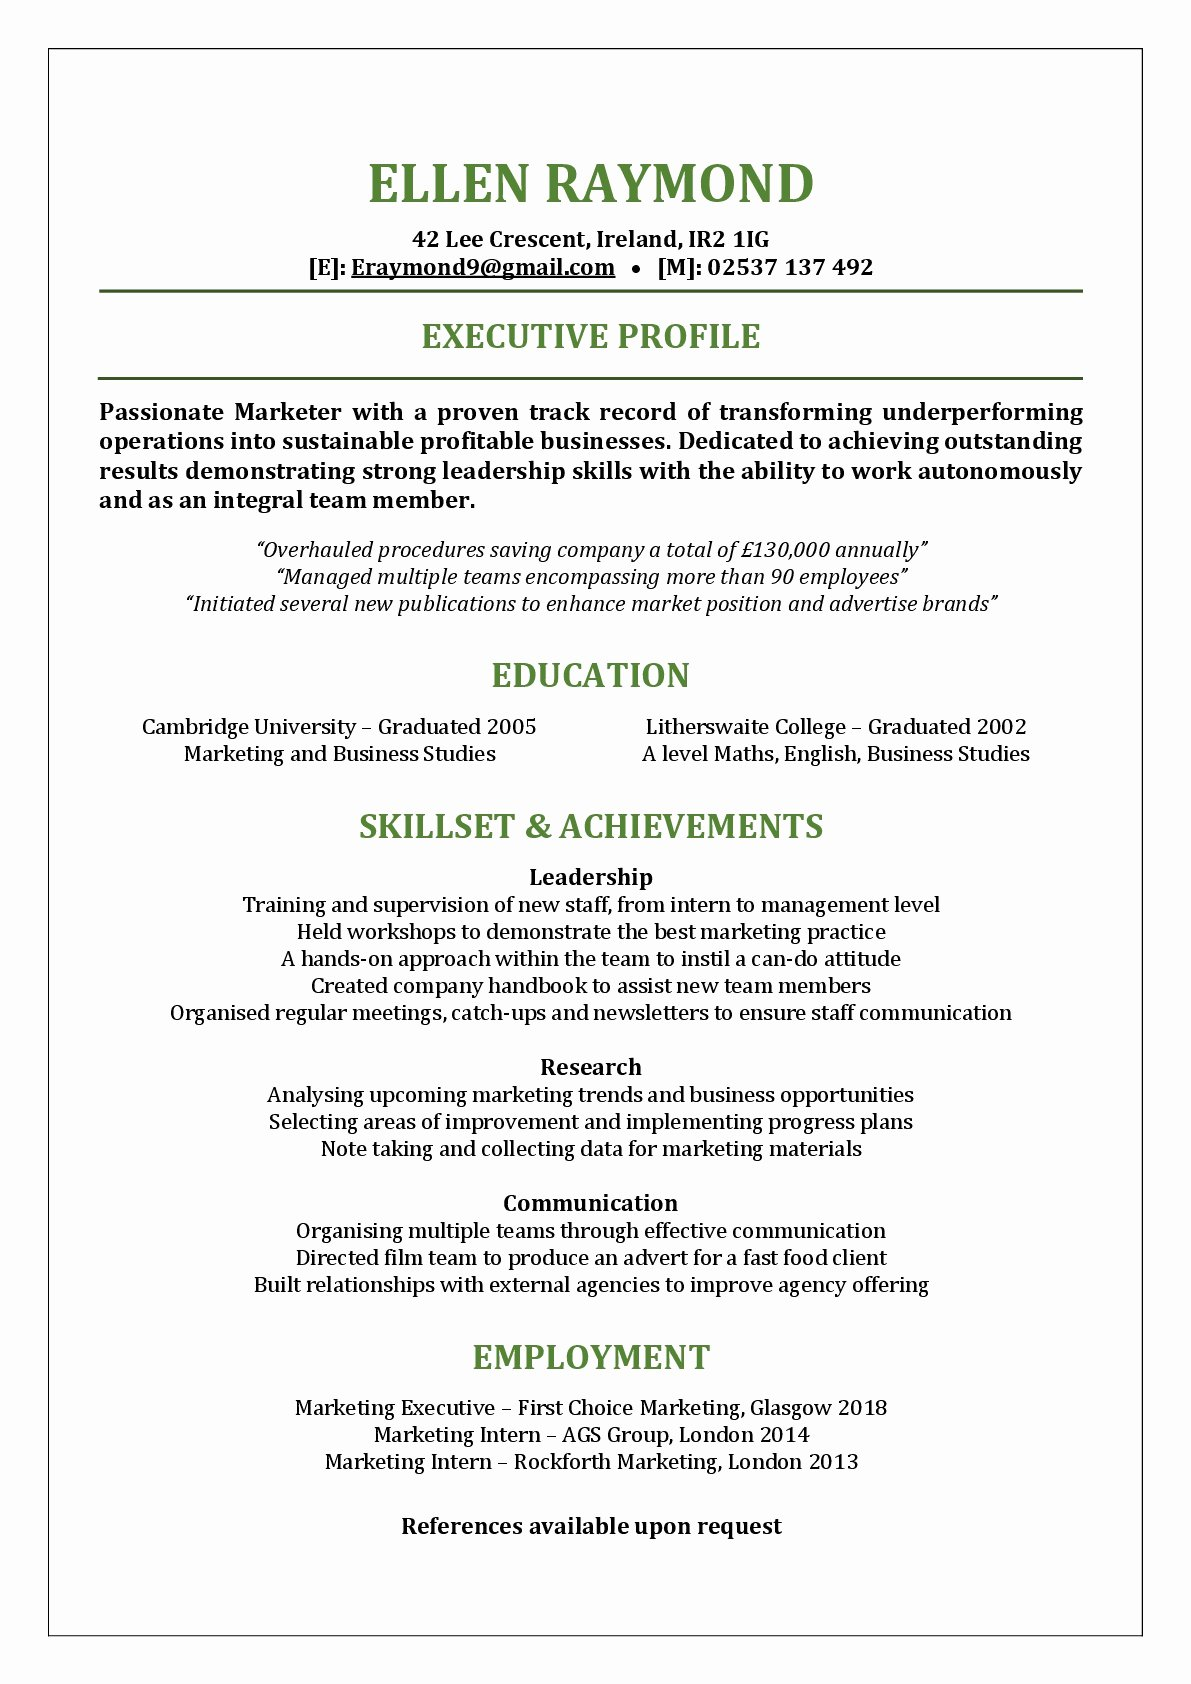 Functional Resume Template Word Lovely Functional Resume Template – Got something to Hide